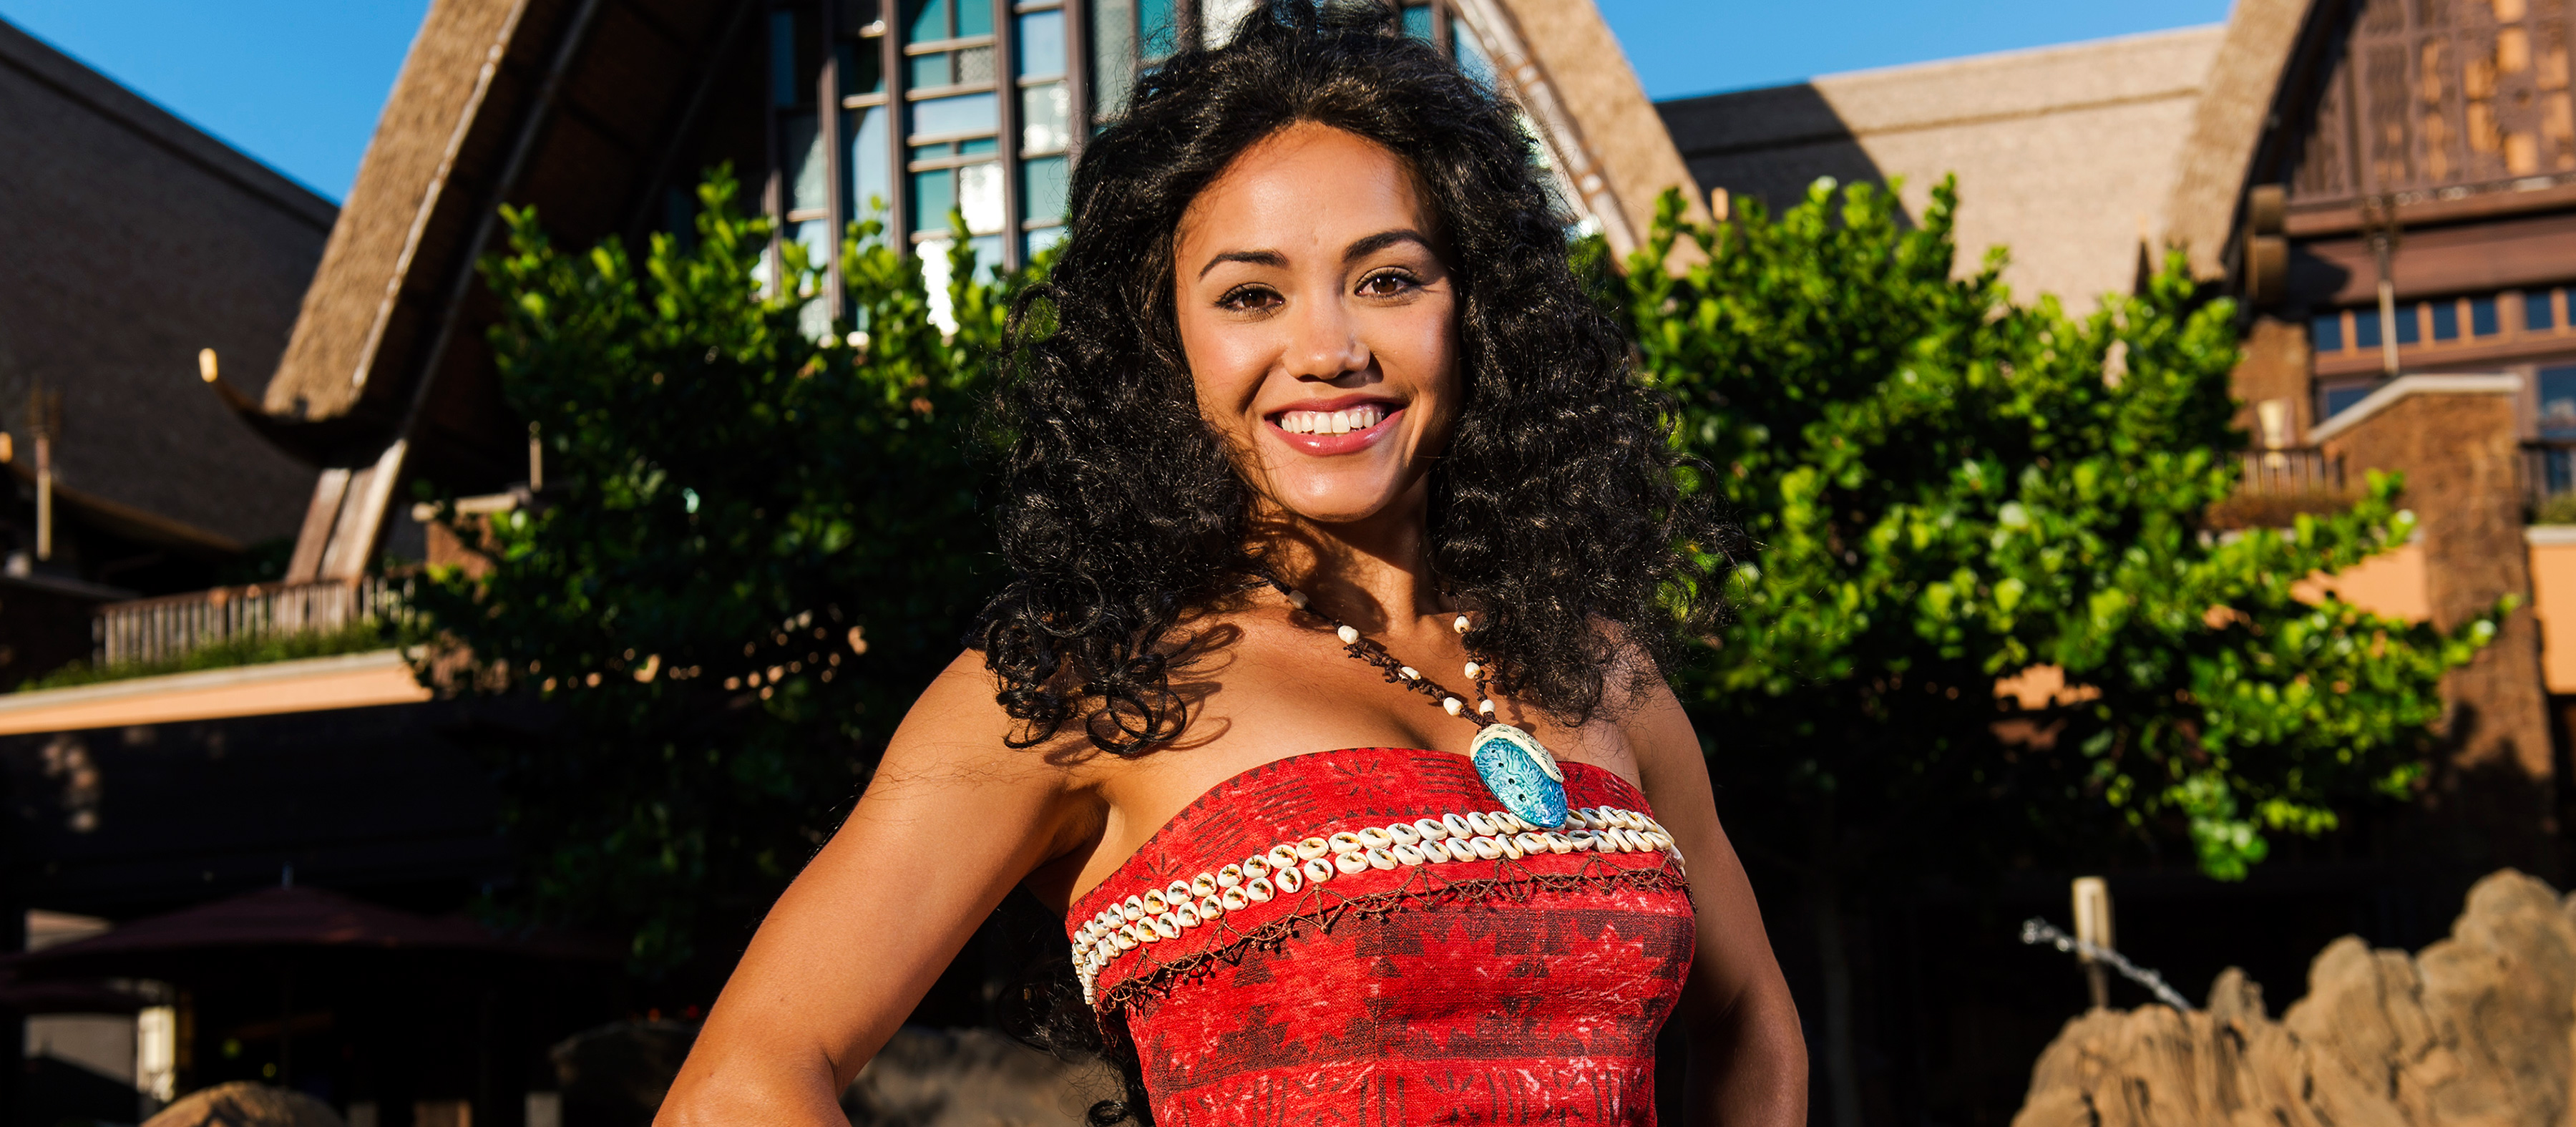 The Moana Character stands smiling in front of Aulani, wearing a top emblazoned with traditional island patterns and small seashells. Her signature necklace, with seashell charm, hangs around her neck.